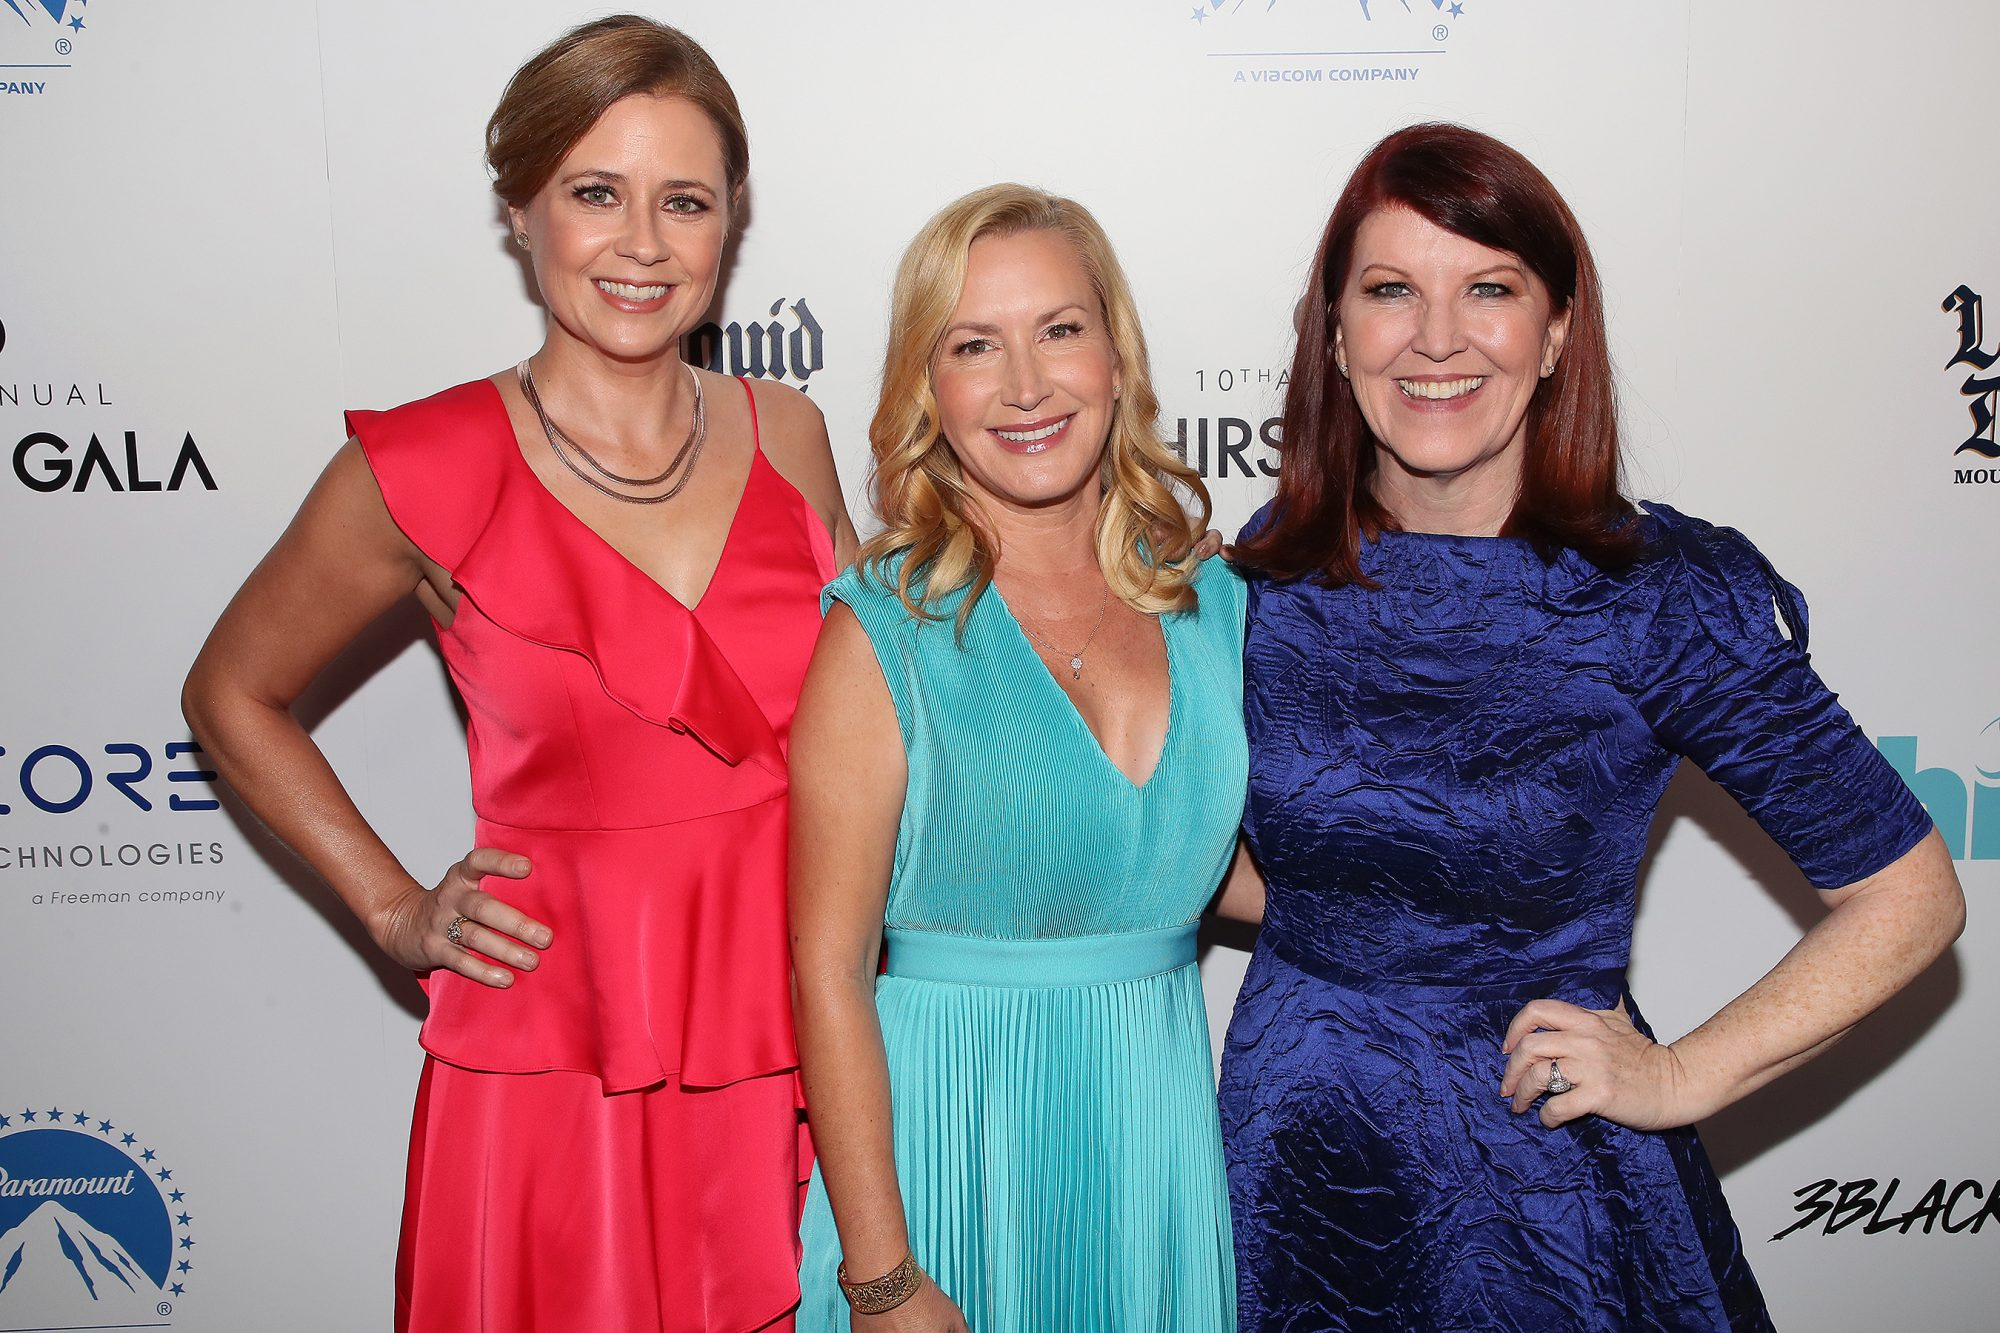 Kate Flannery, Host Angela Kinsey, and Jenna Fischer